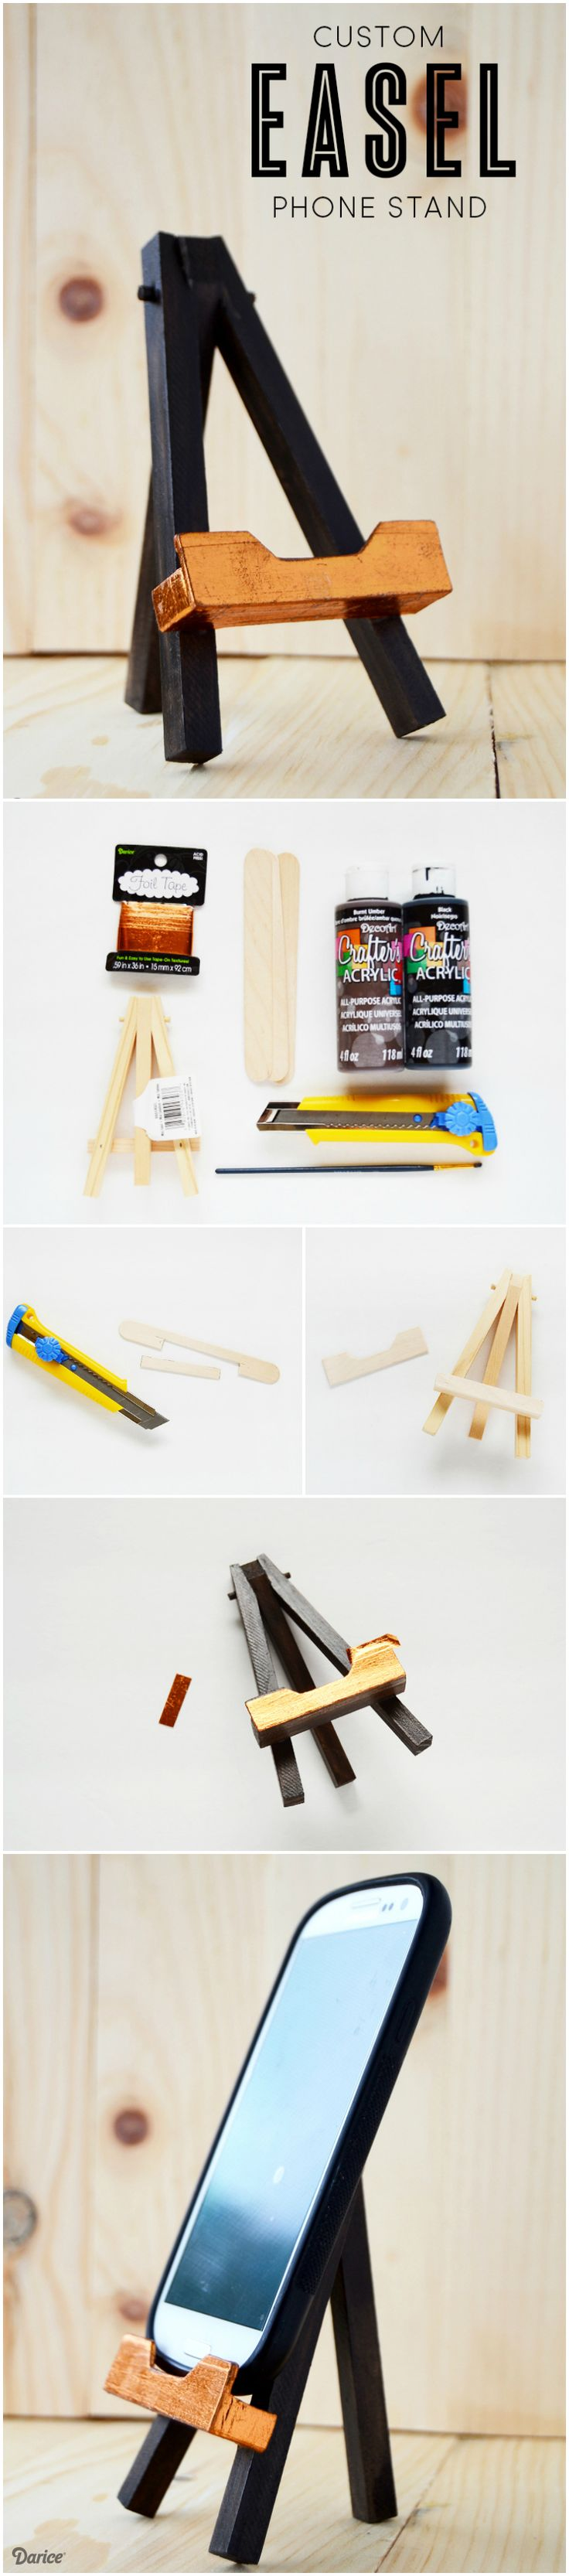 This DIY phone stand easel is a completely customized and artsy stand for your phone. It is made to hold your phone while it's still in it's case.